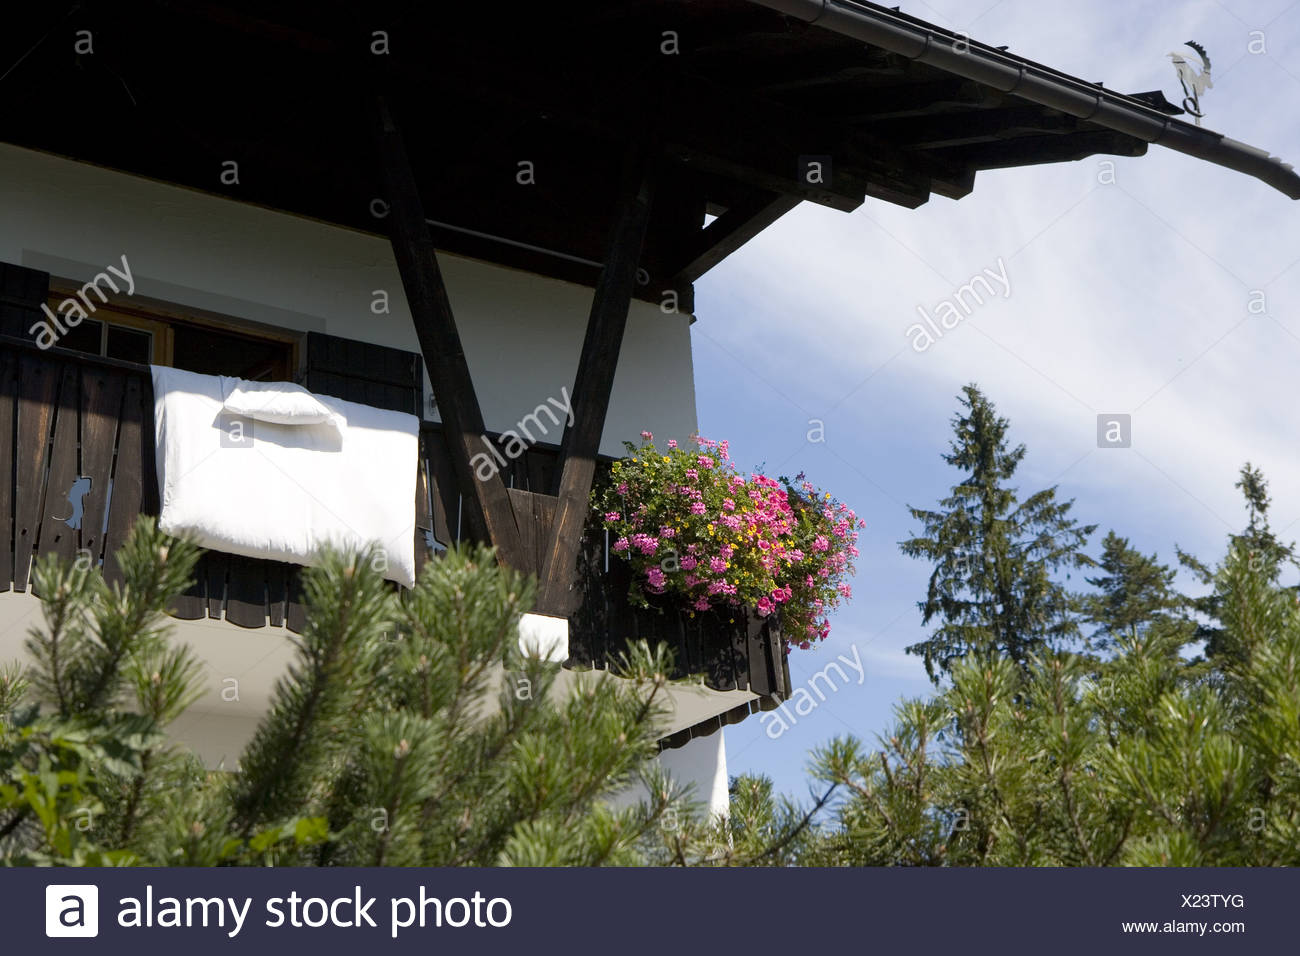 Residence detail balcony flowers bedding airs house Alps-house forest trees idylls vacation vacation house balcony-flowers bed - Stock Image